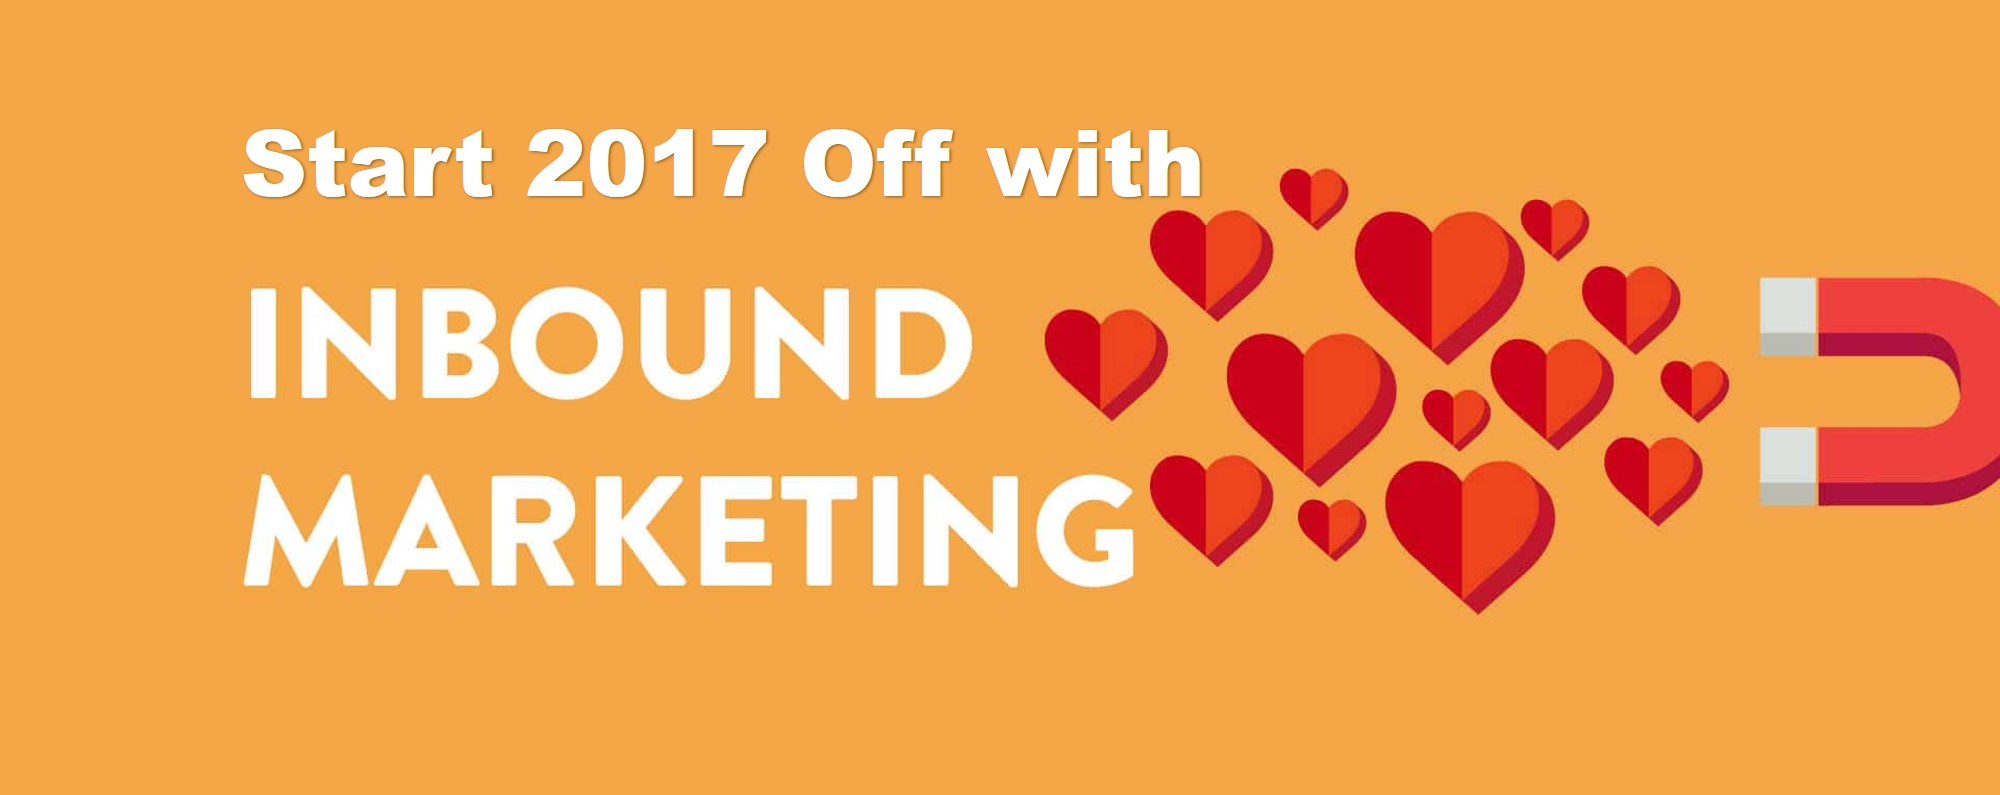 Start 2017 Off with Inbound Marketing